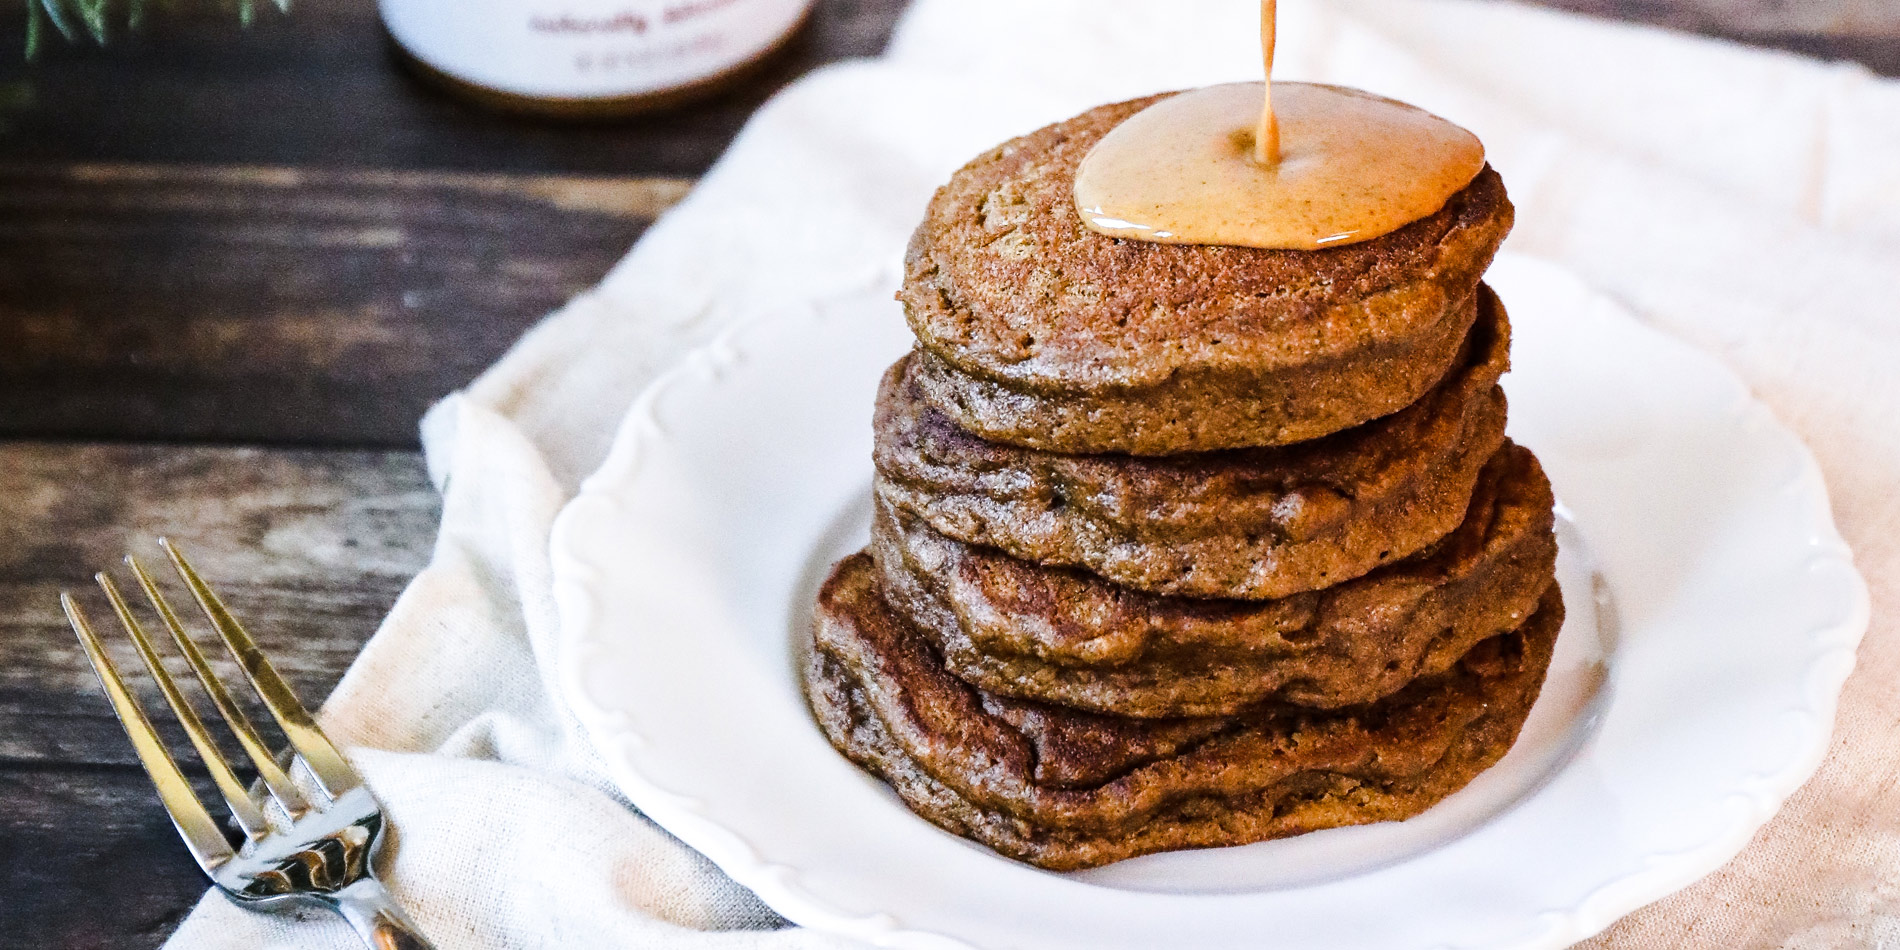 Gingerbread Almond Butter Pancakes with peanut butter drizzle on a white plate with wooden background with pine tree